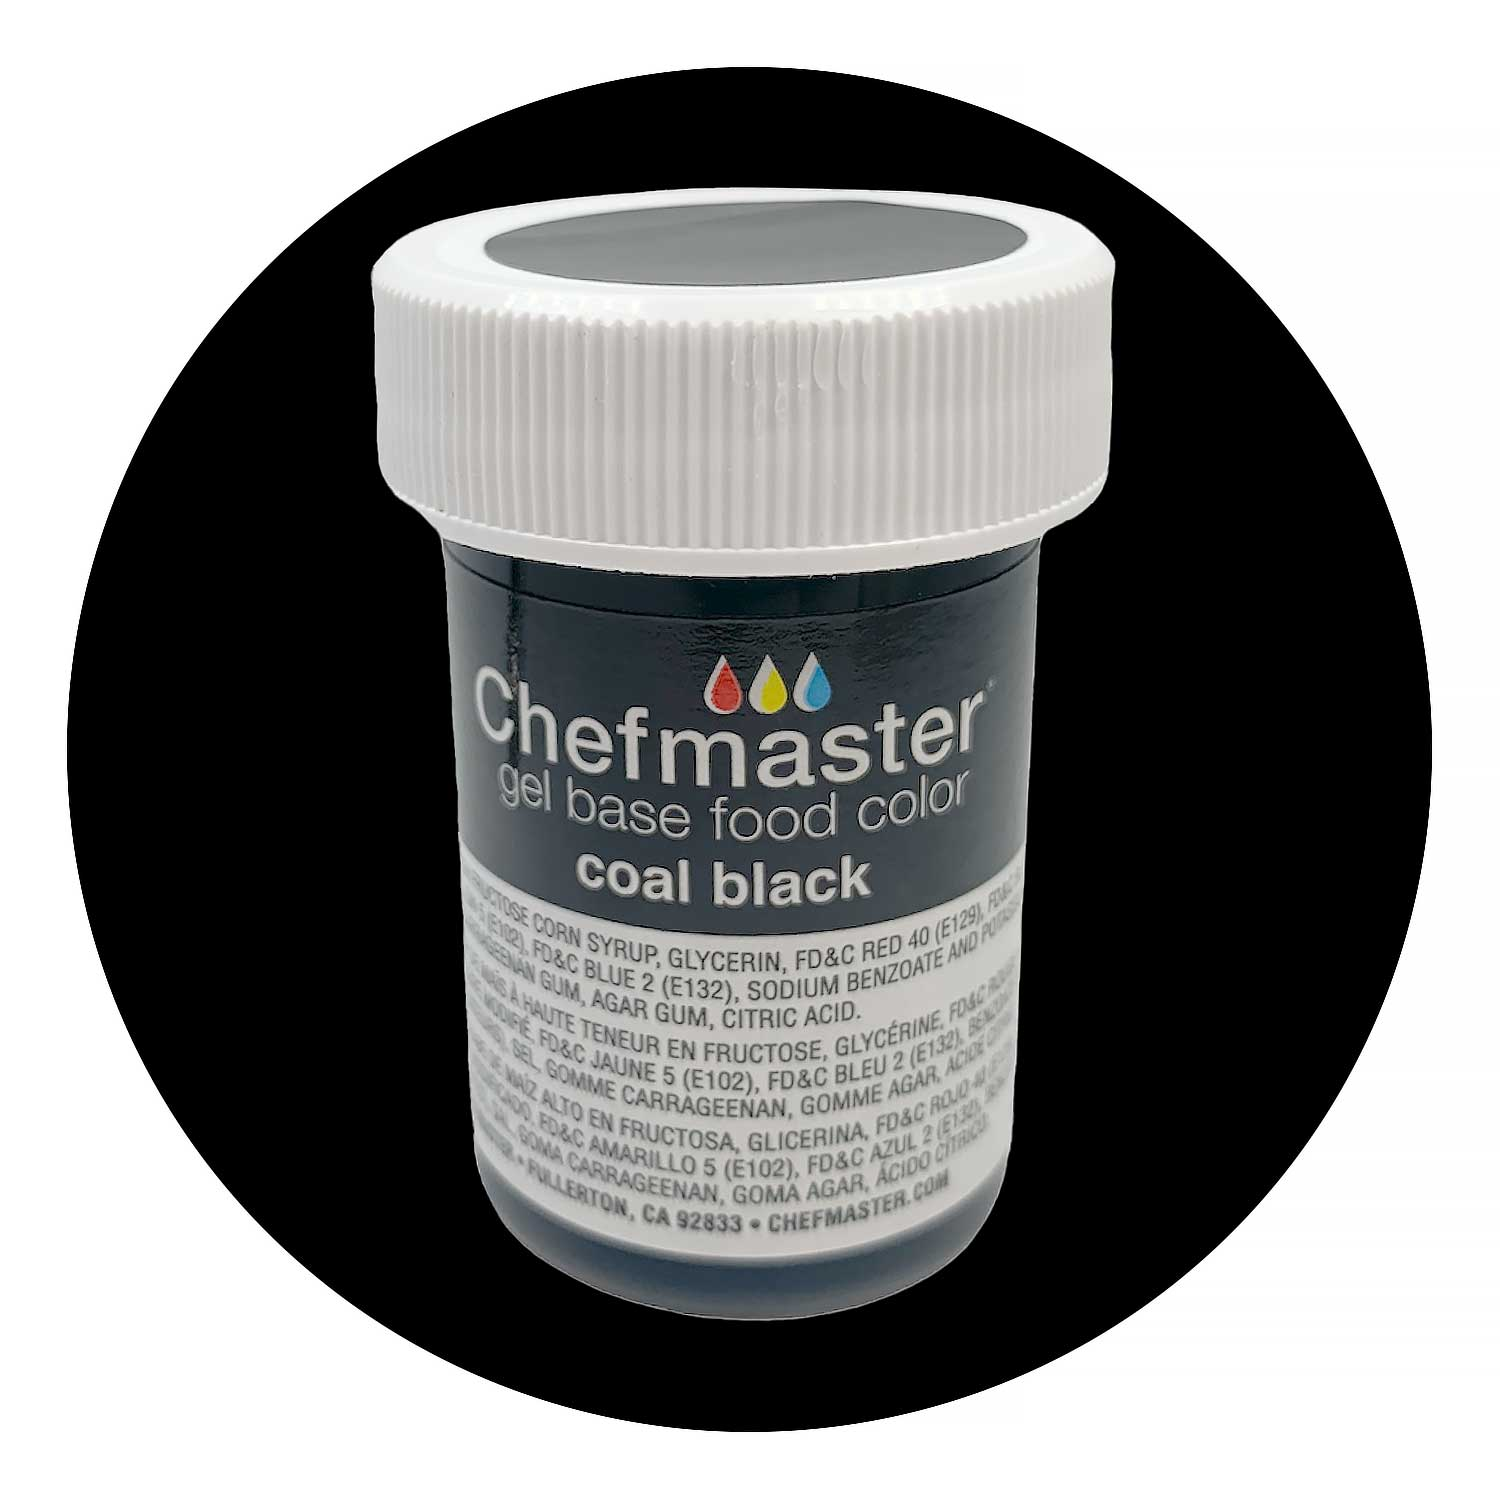 Coal Black Chefmaster Food Color Gel (Old Item # 41-2339)